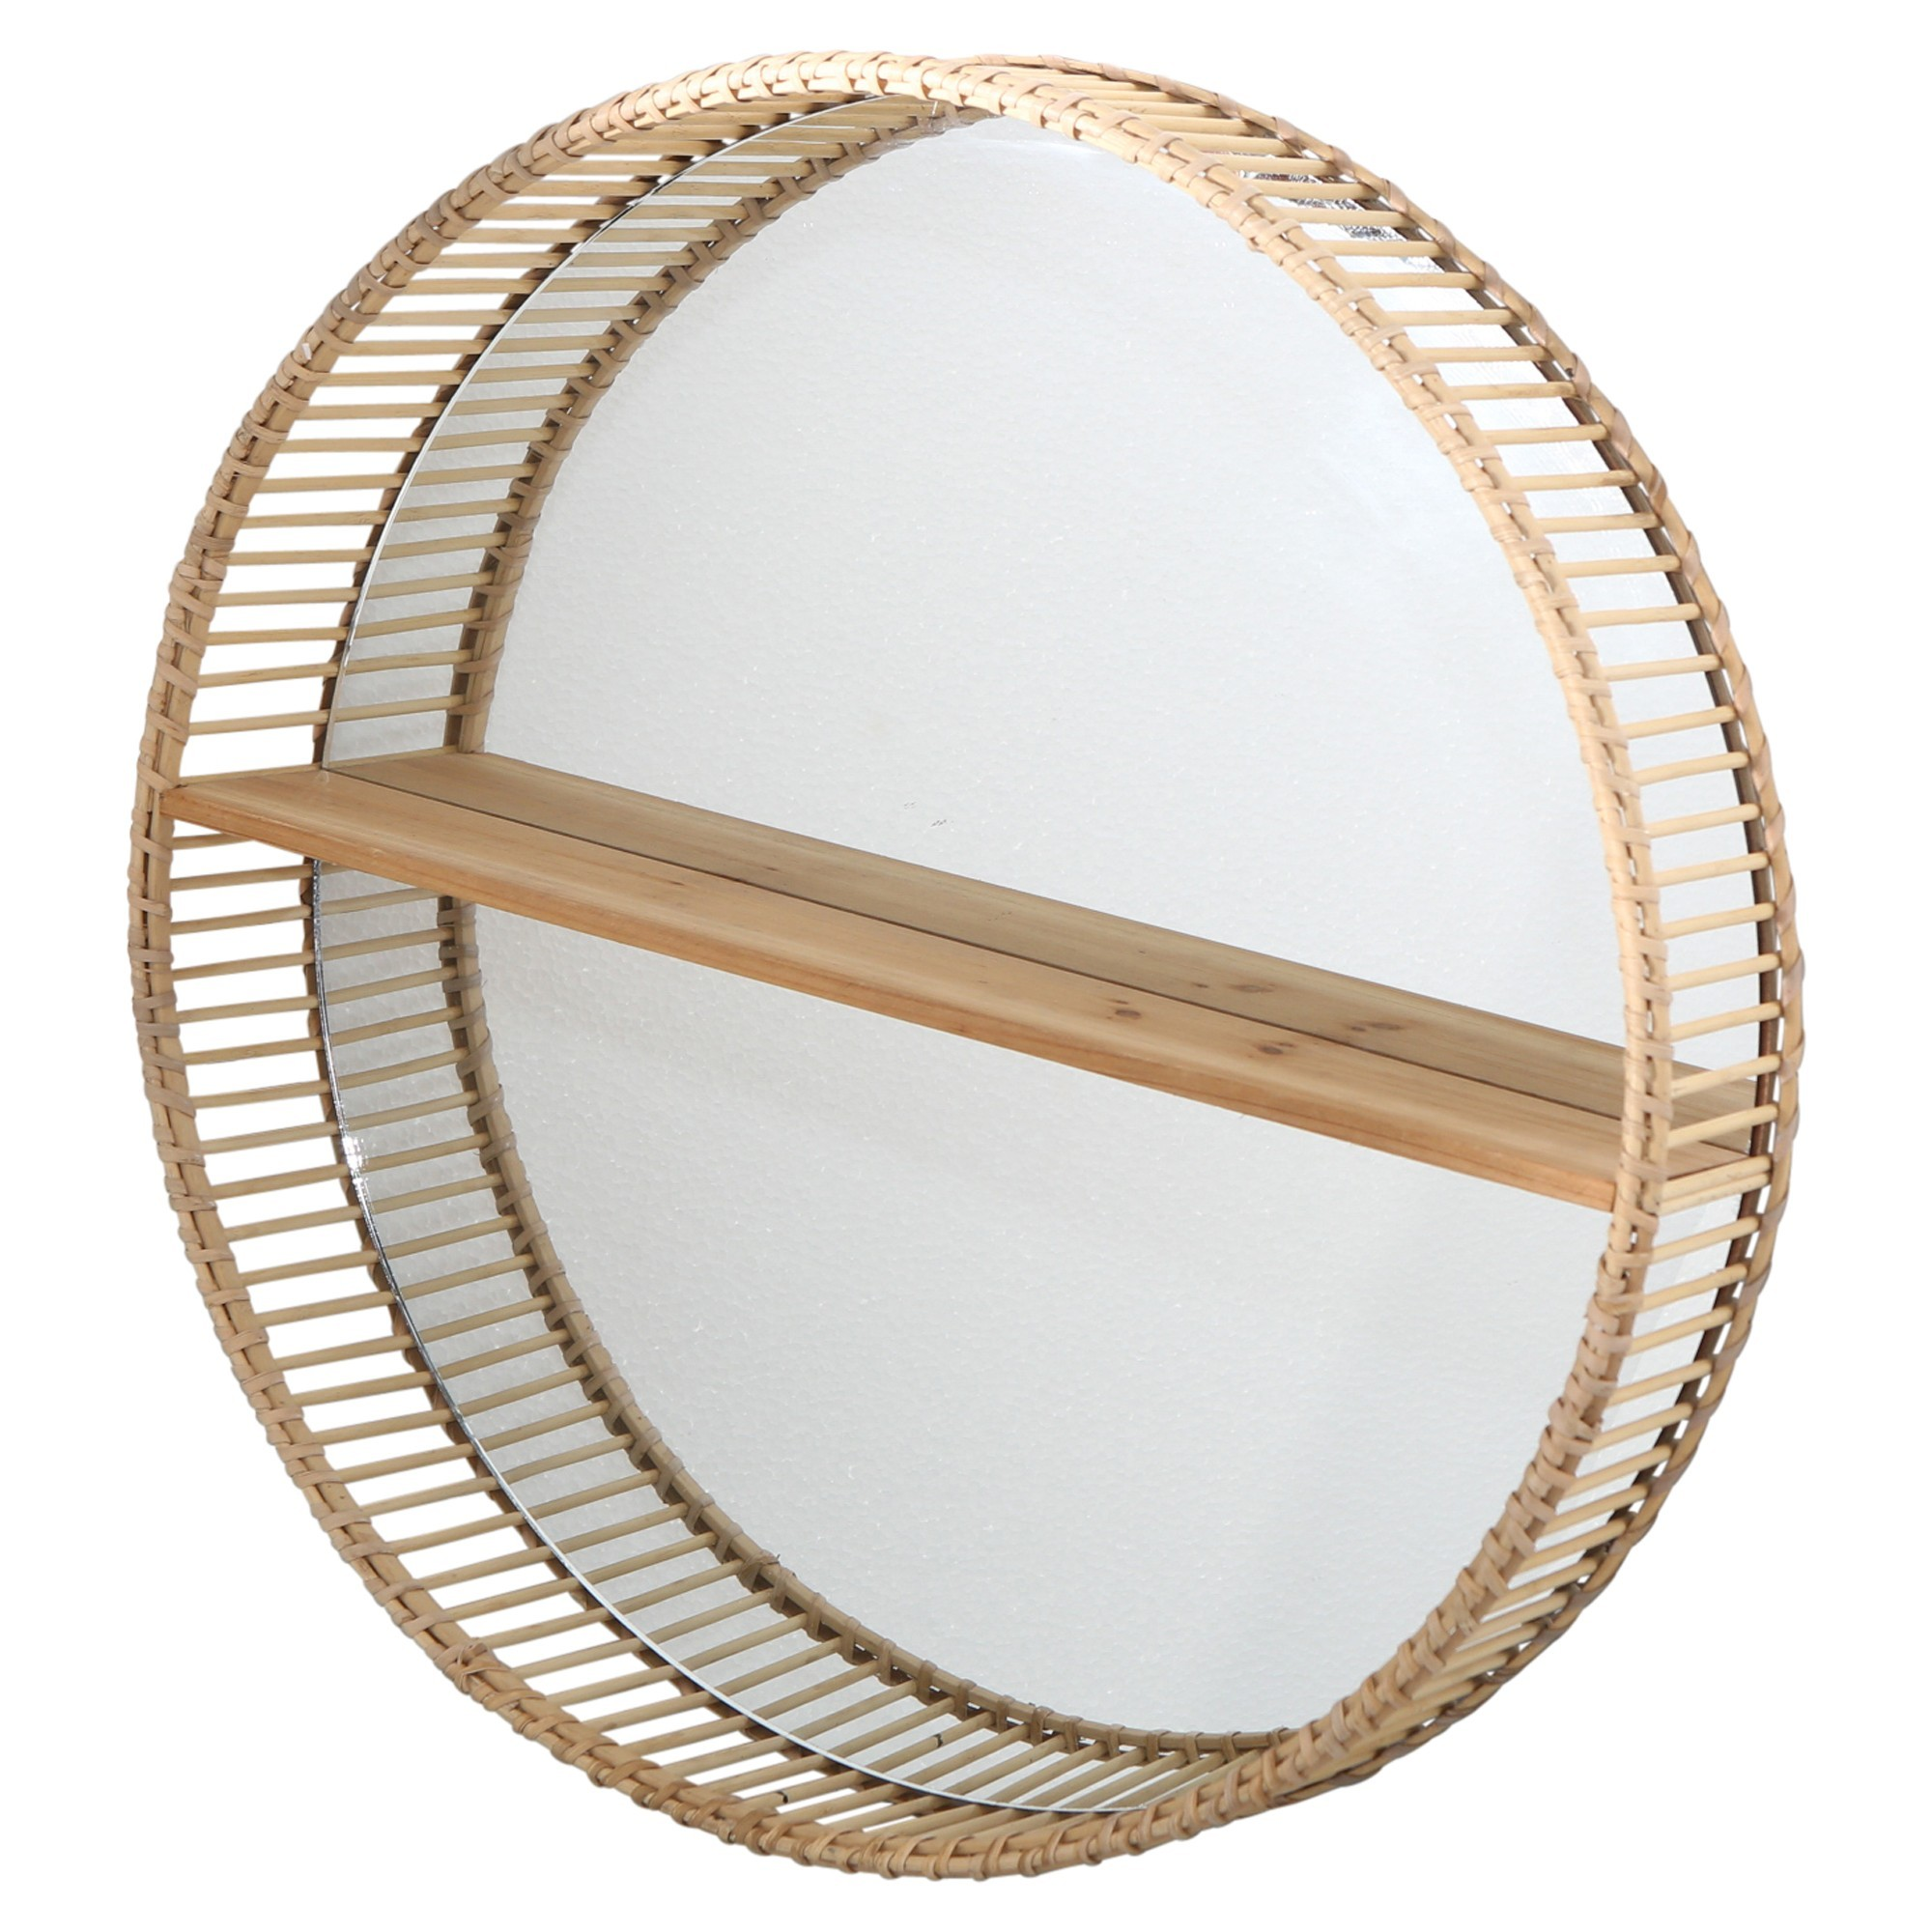 Gary Bamboo Rattan Round Wall Mirror with Shelf, 60cm